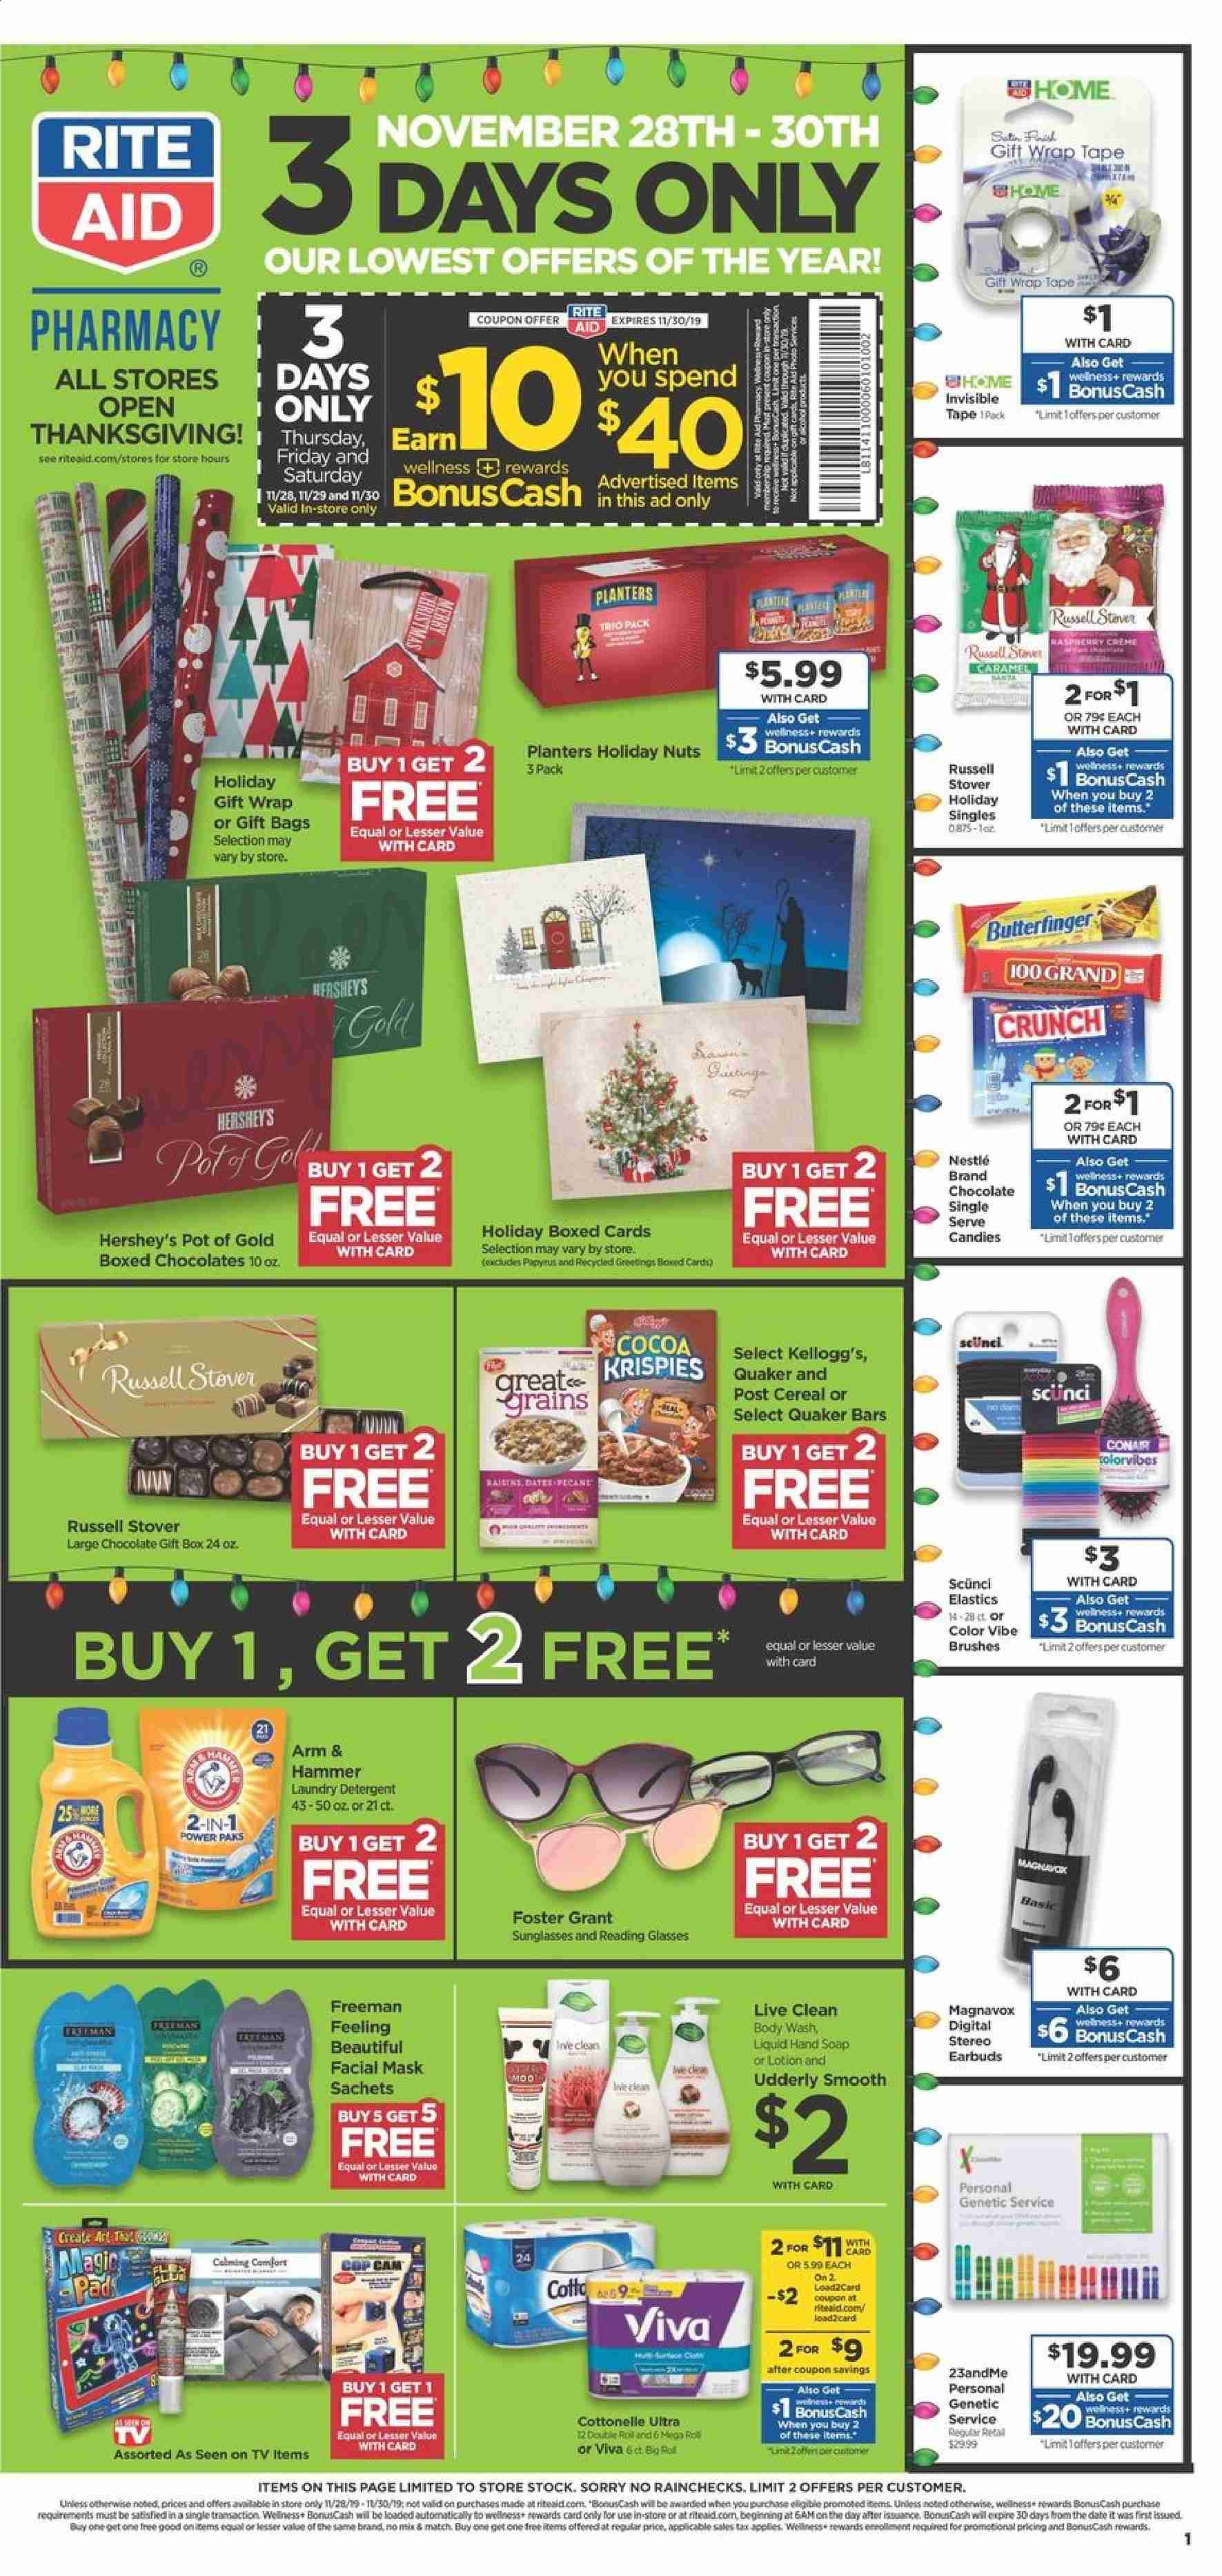 RITE AID Flyer  - 11.28.2019 - 11.30.2019. Page 1.